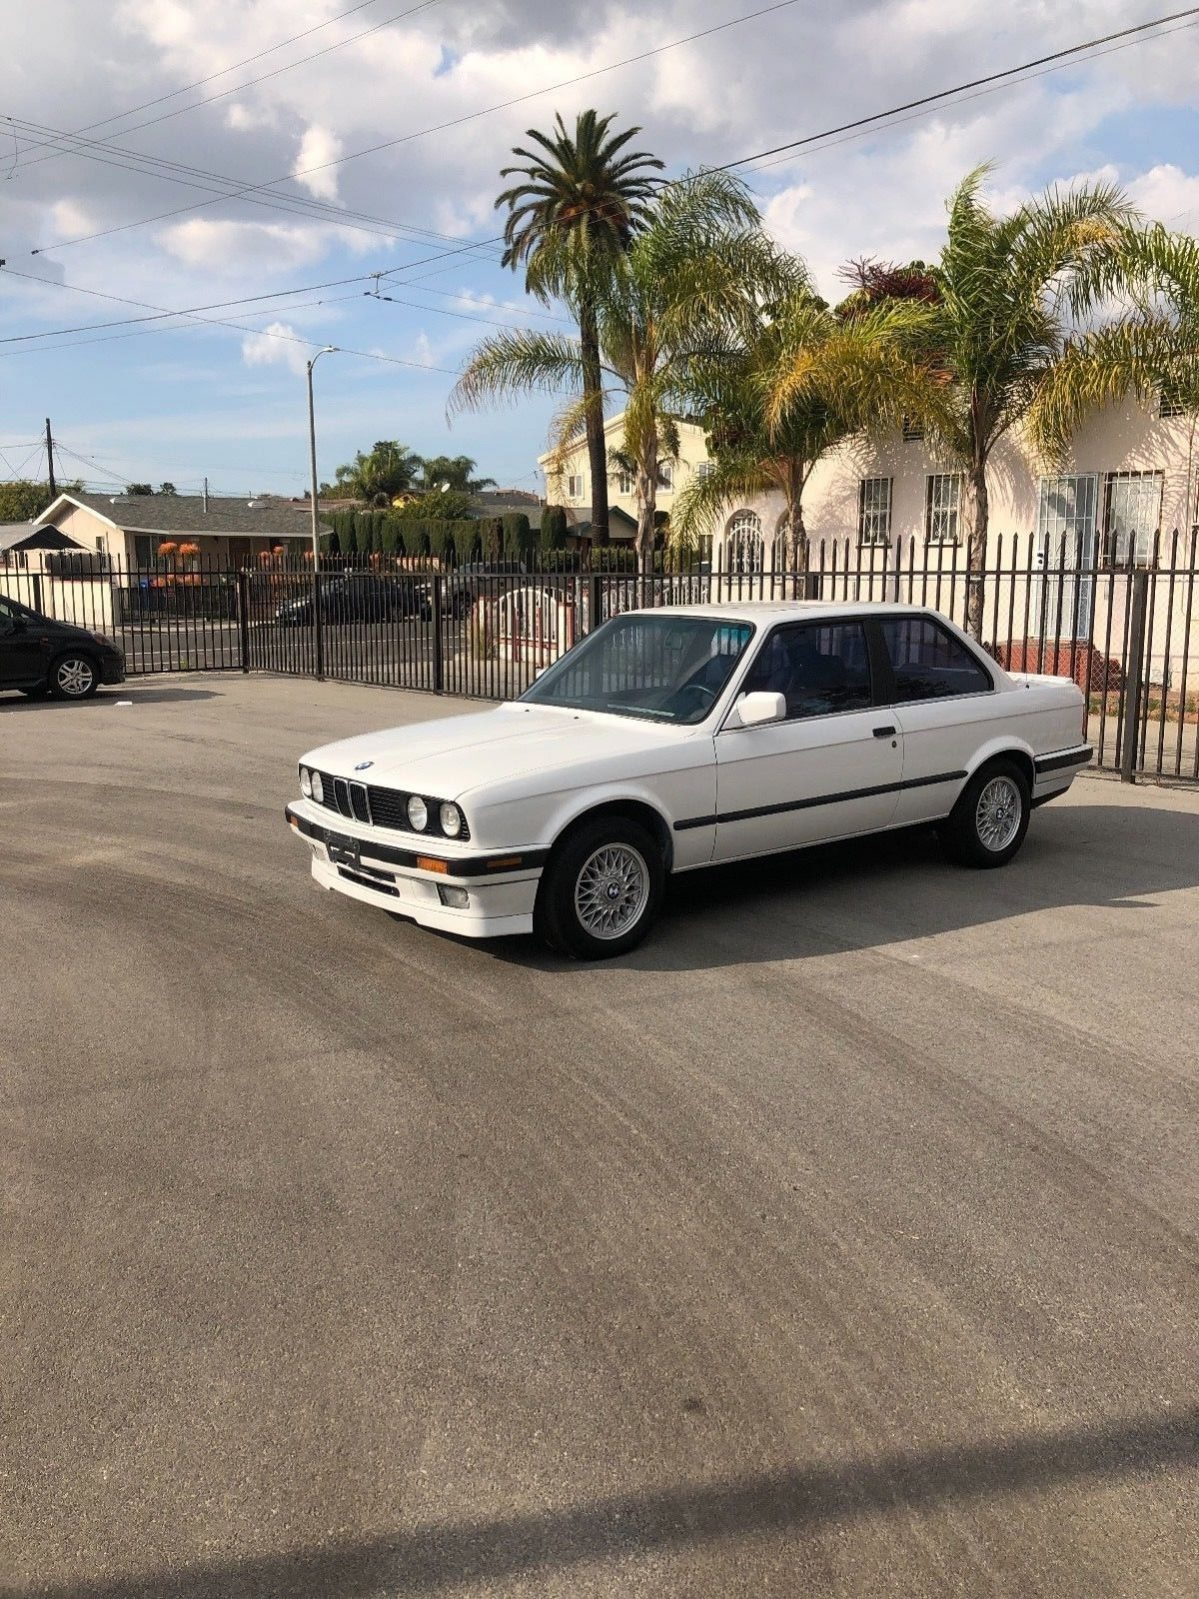 Bmw E30 325is 2 Door Coupe Vintage Alpine White Brothers Motorworks